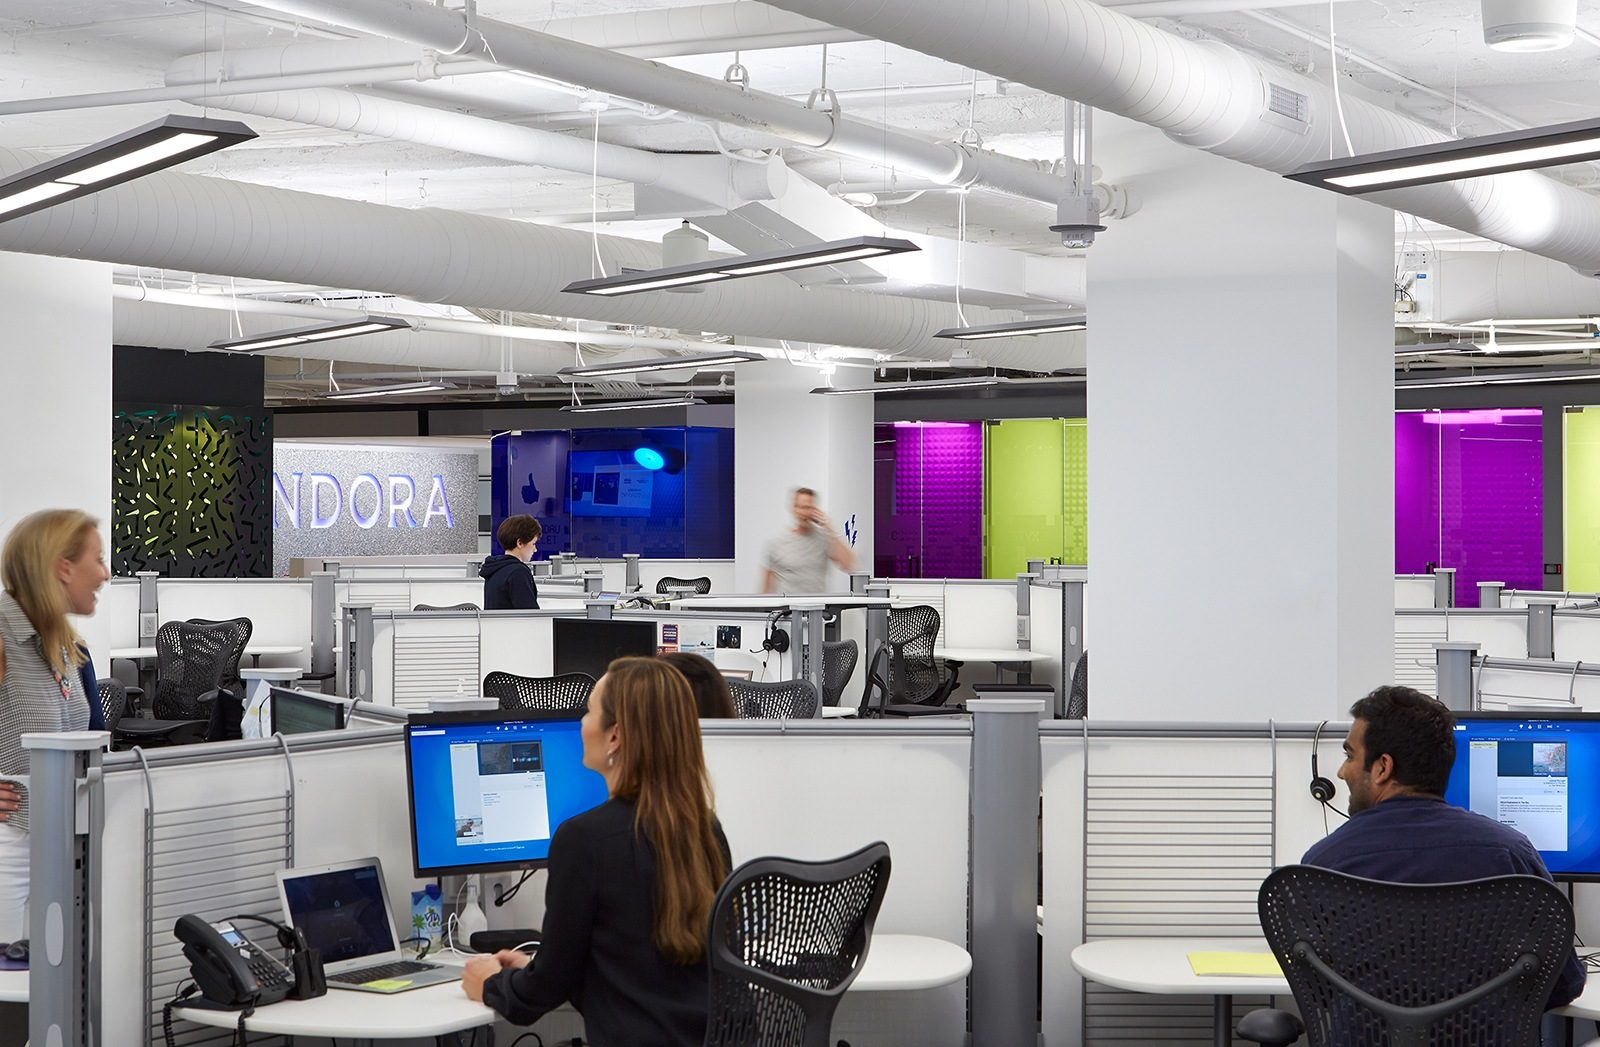 pandora-new-office-chicago-10